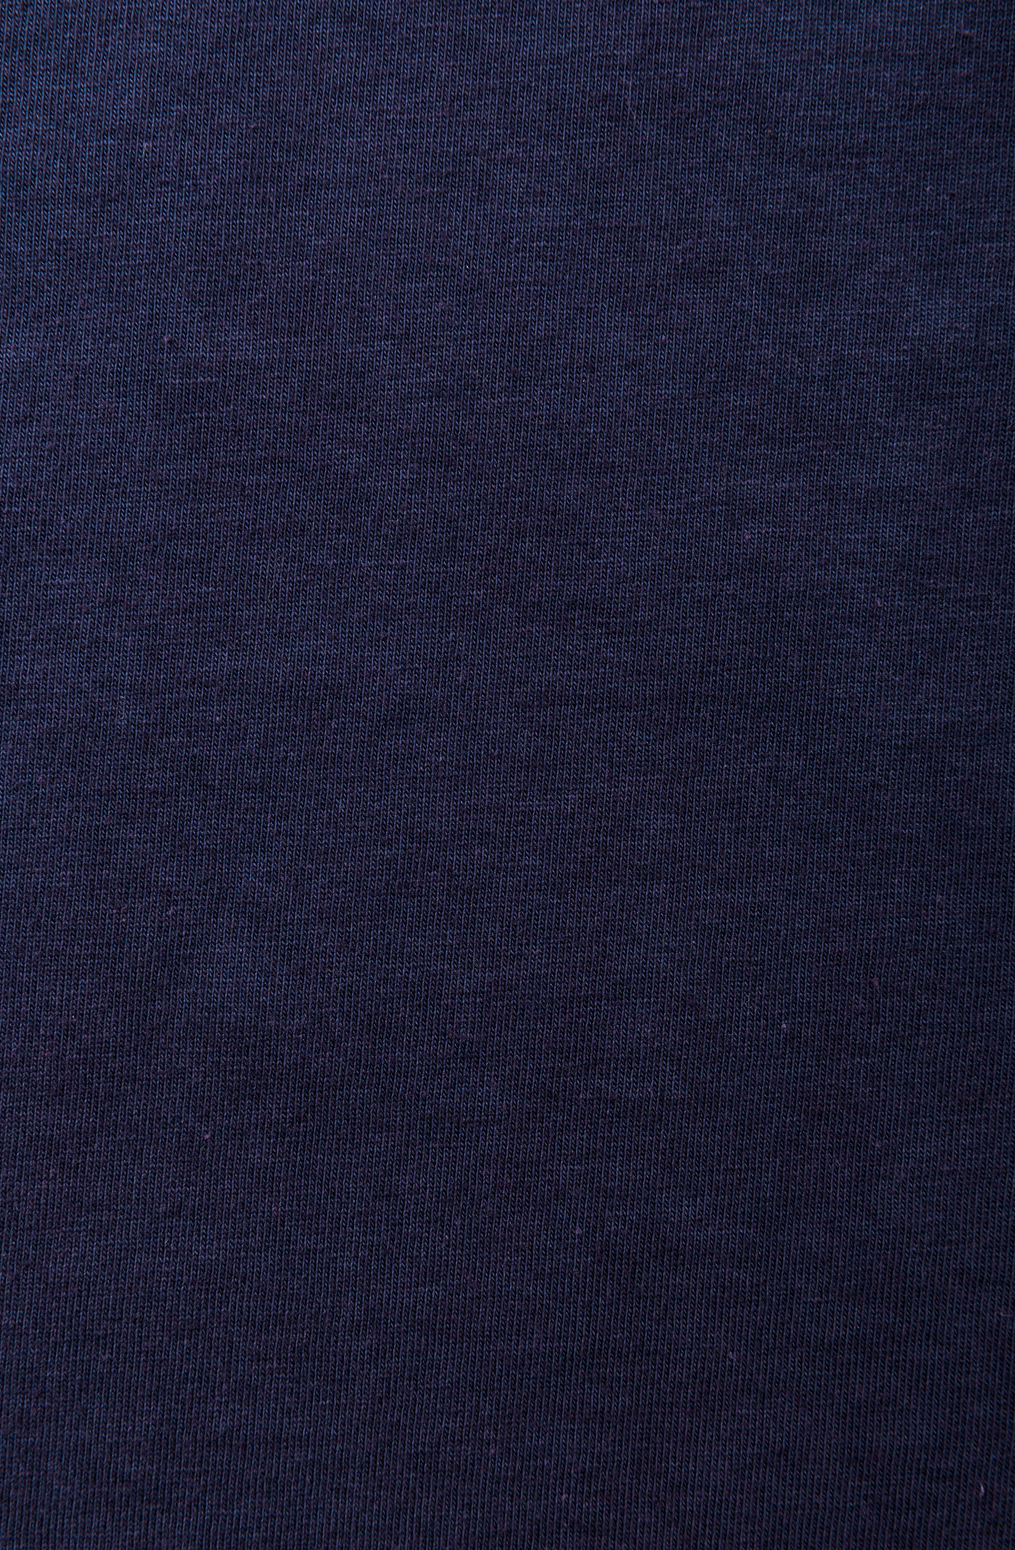 Fabric swatch   medium weight cotton jersey   navy   october 2018   abraham rowe